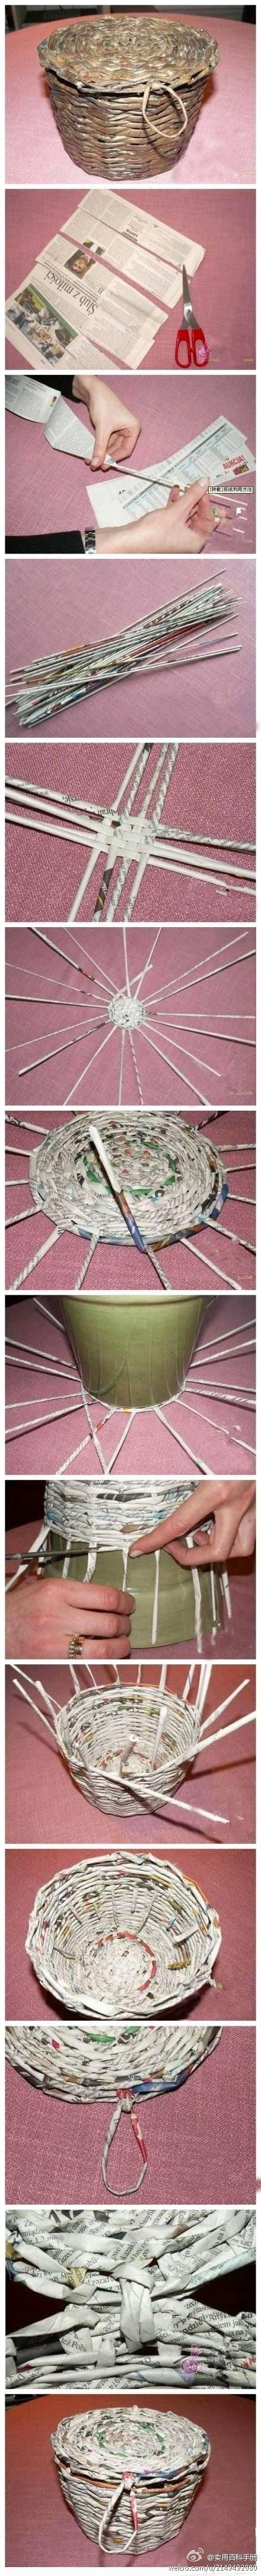 DIY Newspaper Basket